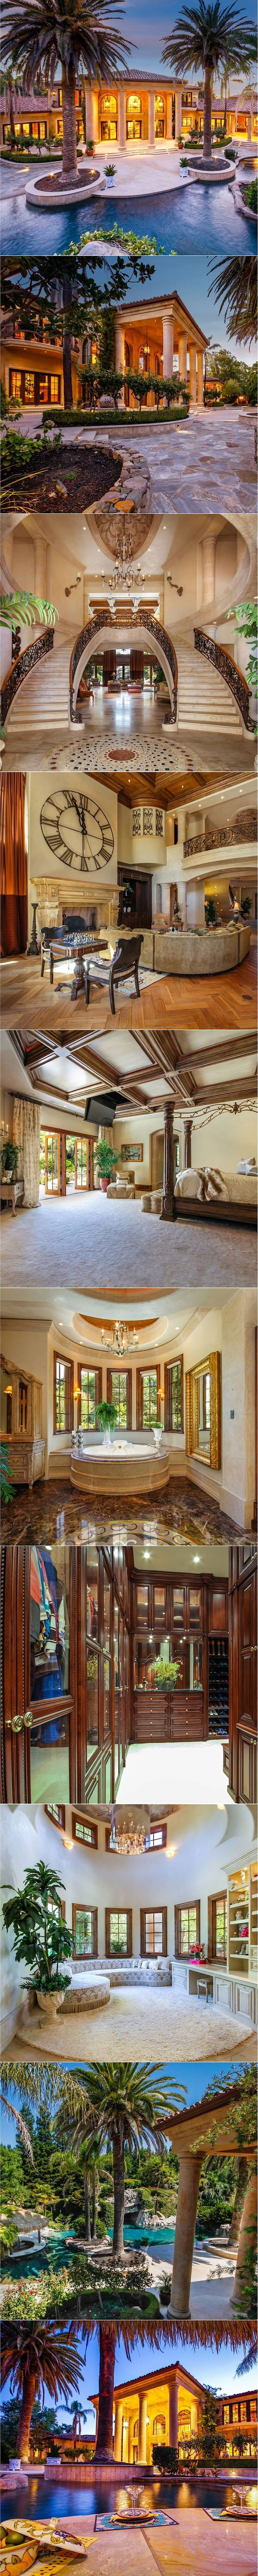 Follow us @propertygrams for more luxury listings. . . . The Crown Jewell of Granite Bay, one-of-a-kind estate has something for everyone. Grand double limestone staircases in the foyer that features a dome ceiling with 5 step custom finished plaster. 4 bedrooms, 2 offices, 7 bathrooms, detached guest house, and an oasis backyard with 100,000 […]